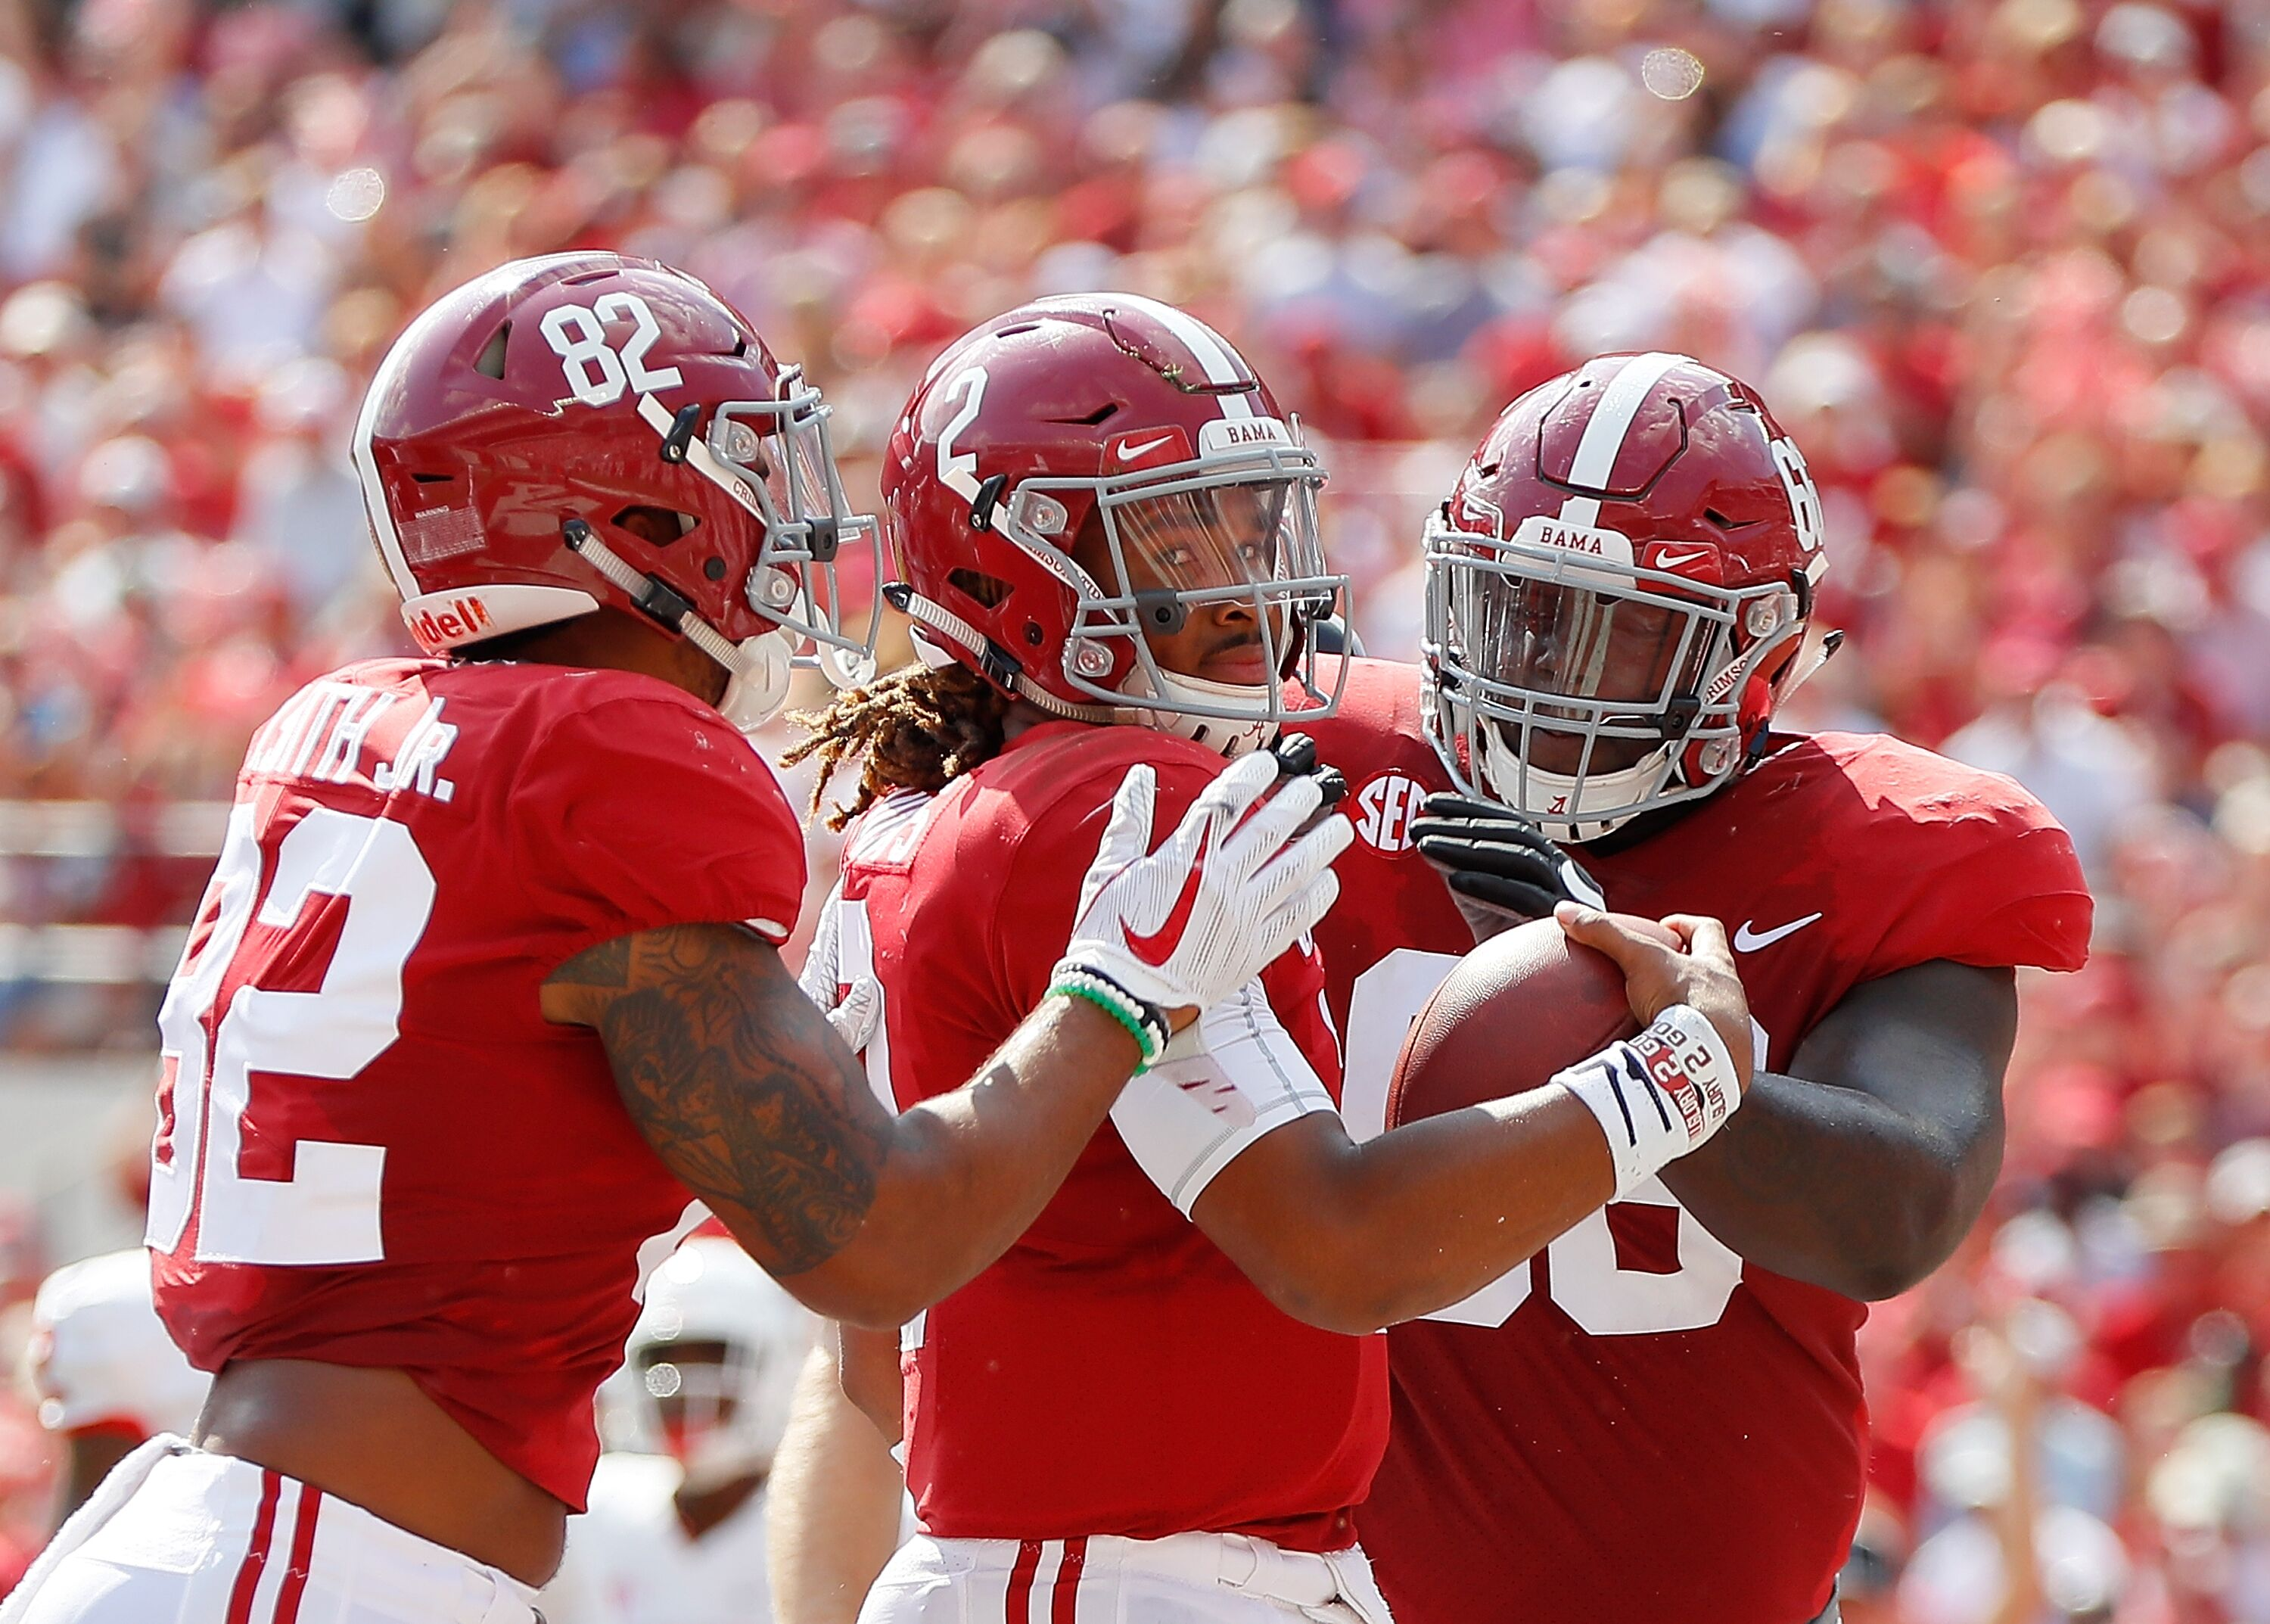 The Washington State Cougars football program is the intercollegiate American football team for Washington State University located in the US state of Washington